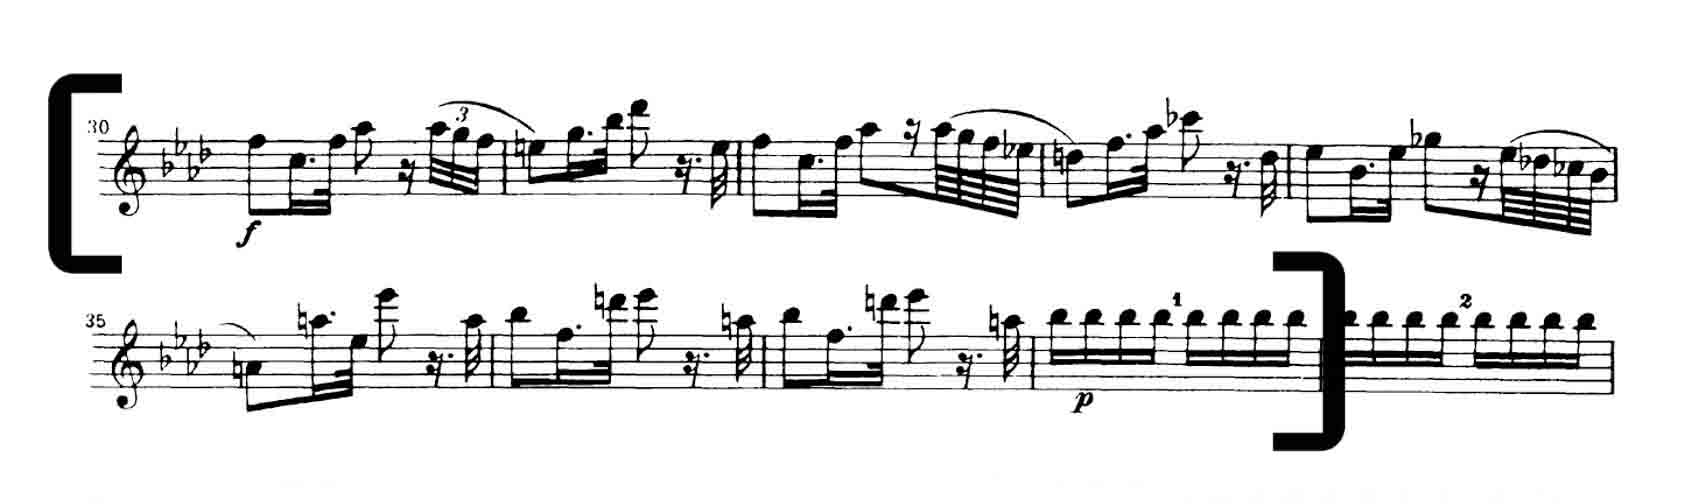 Mozart 39 mvt 2 National Youth Orchestra Violin audition excerpts